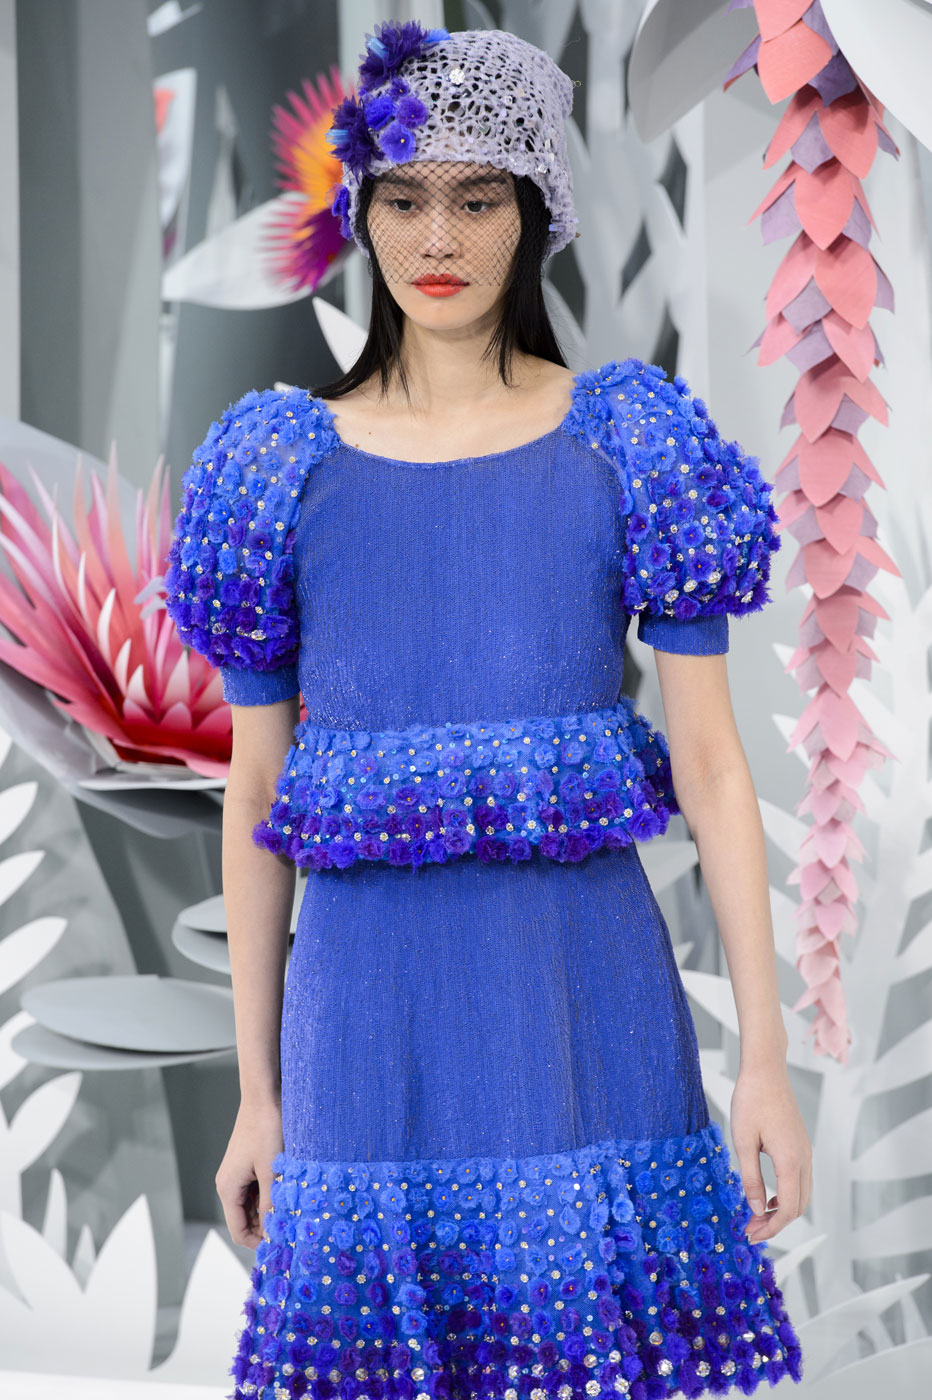 Chanel-fashion-runway-show-haute-couture-paris-spring-summer-2015-the-impression-089